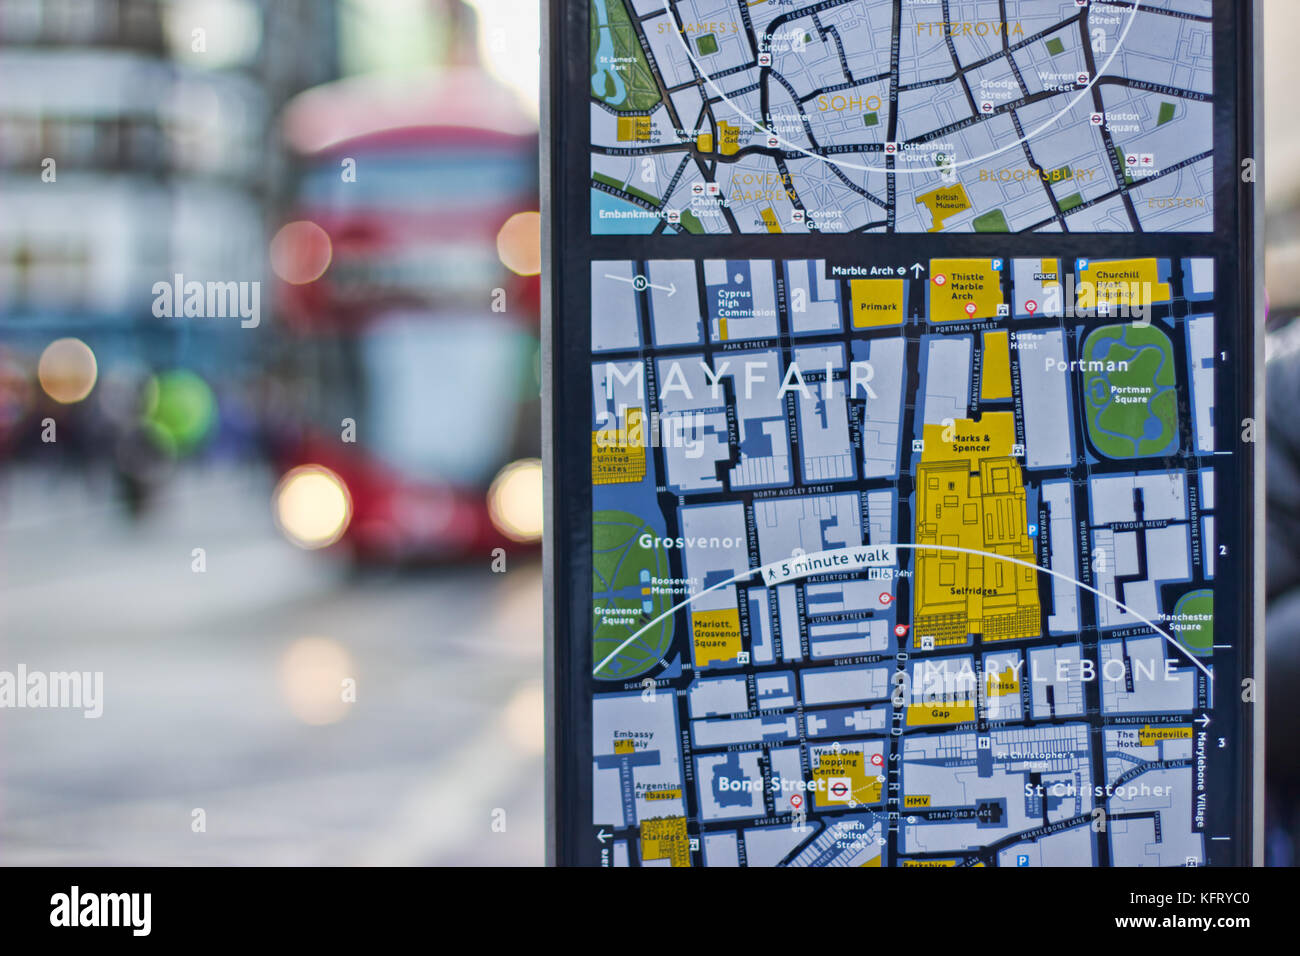 London Oxford Street Tourist Street Map Showing Red Bus In The Stock